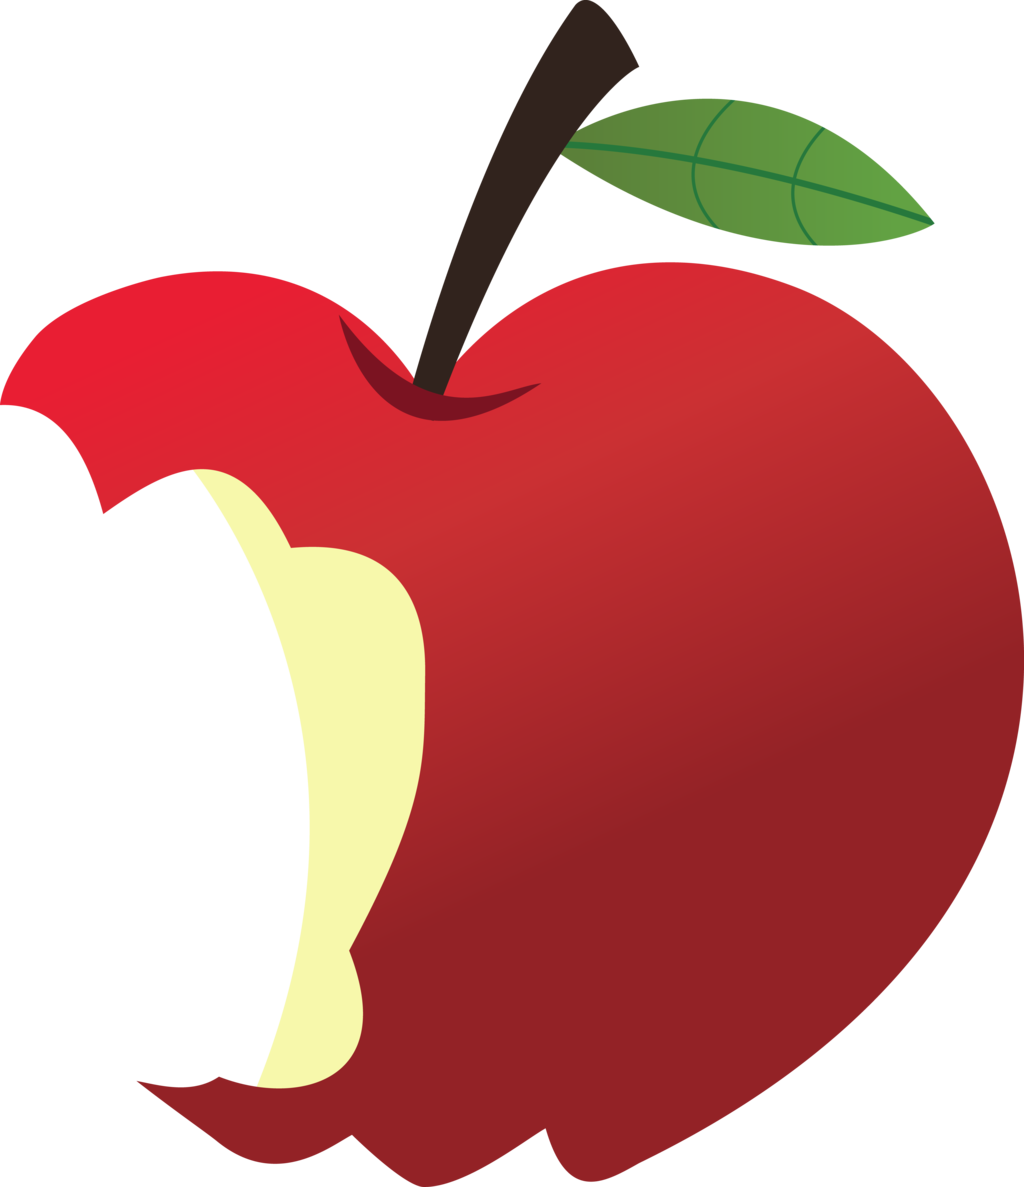 Simple apple clipart graphic free download Bitten Apple Clipart - Imagens de clip art gratuitas | PINTURA EM ... graphic free download